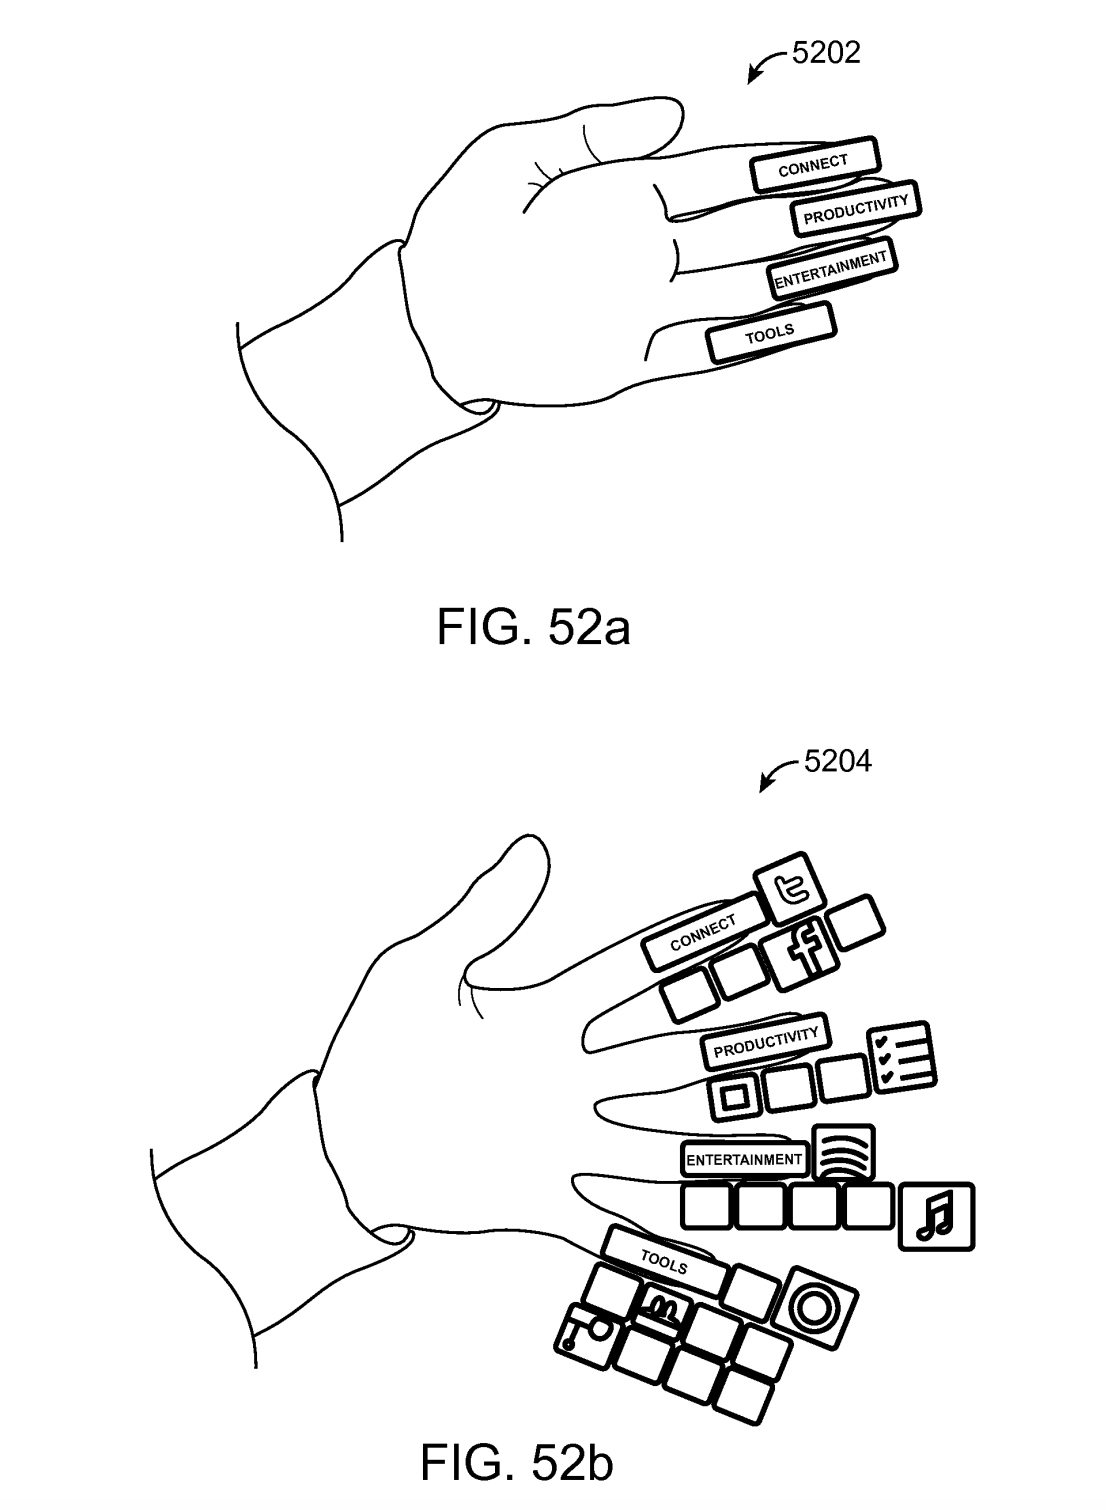 See the beautiful, nightmarish patent illustrations for a